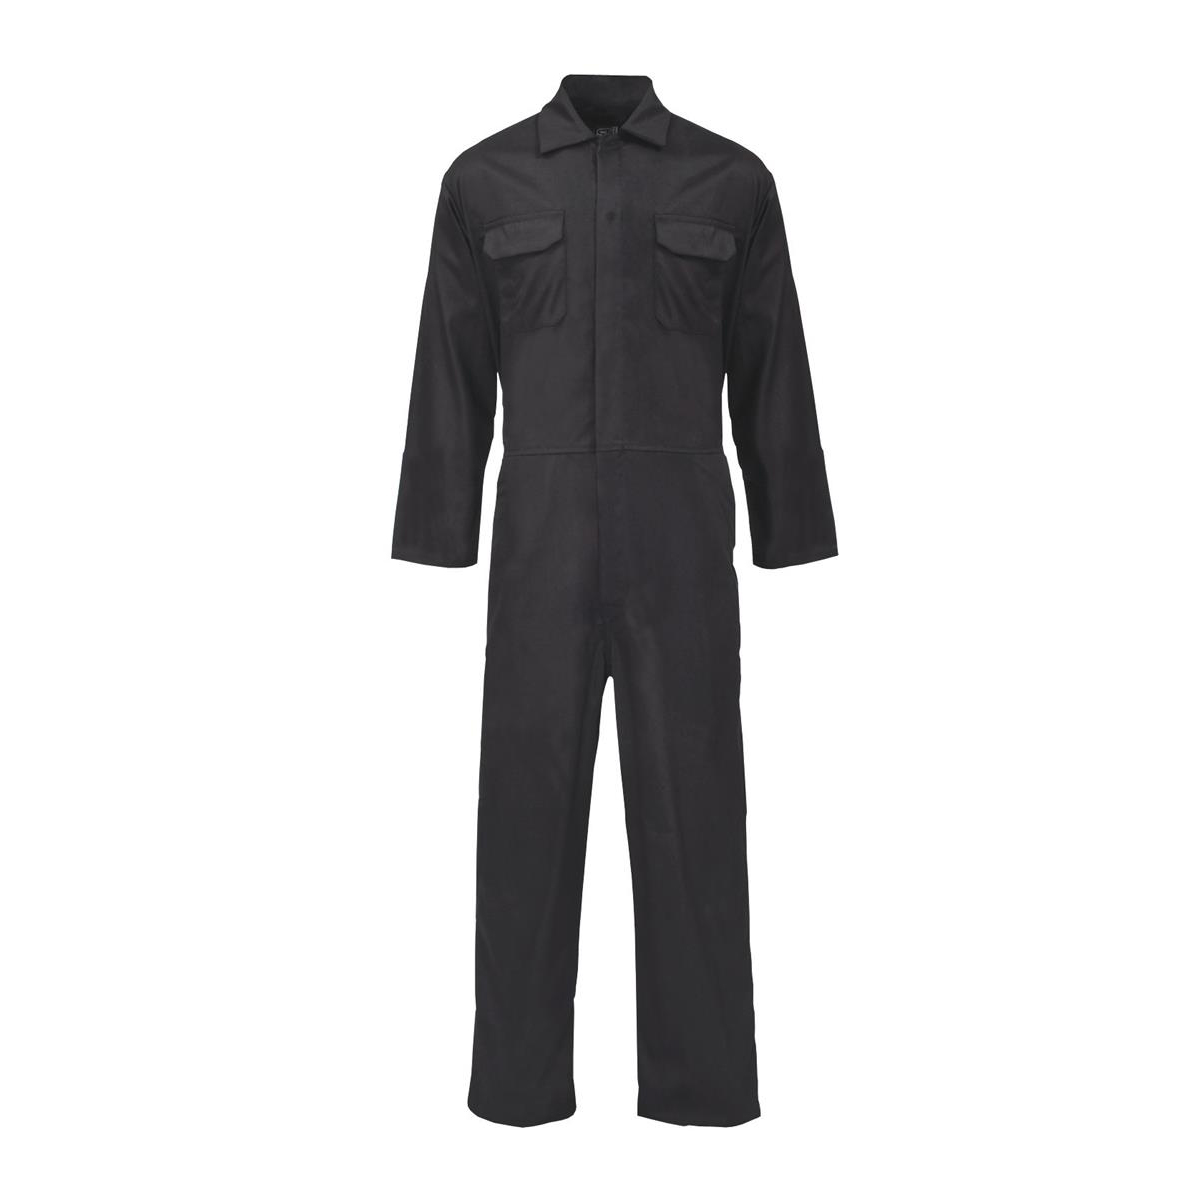 Coverall Basic with Popper Front Opening Polycotton XXXLarge Black Approx 3 Day Leadtime